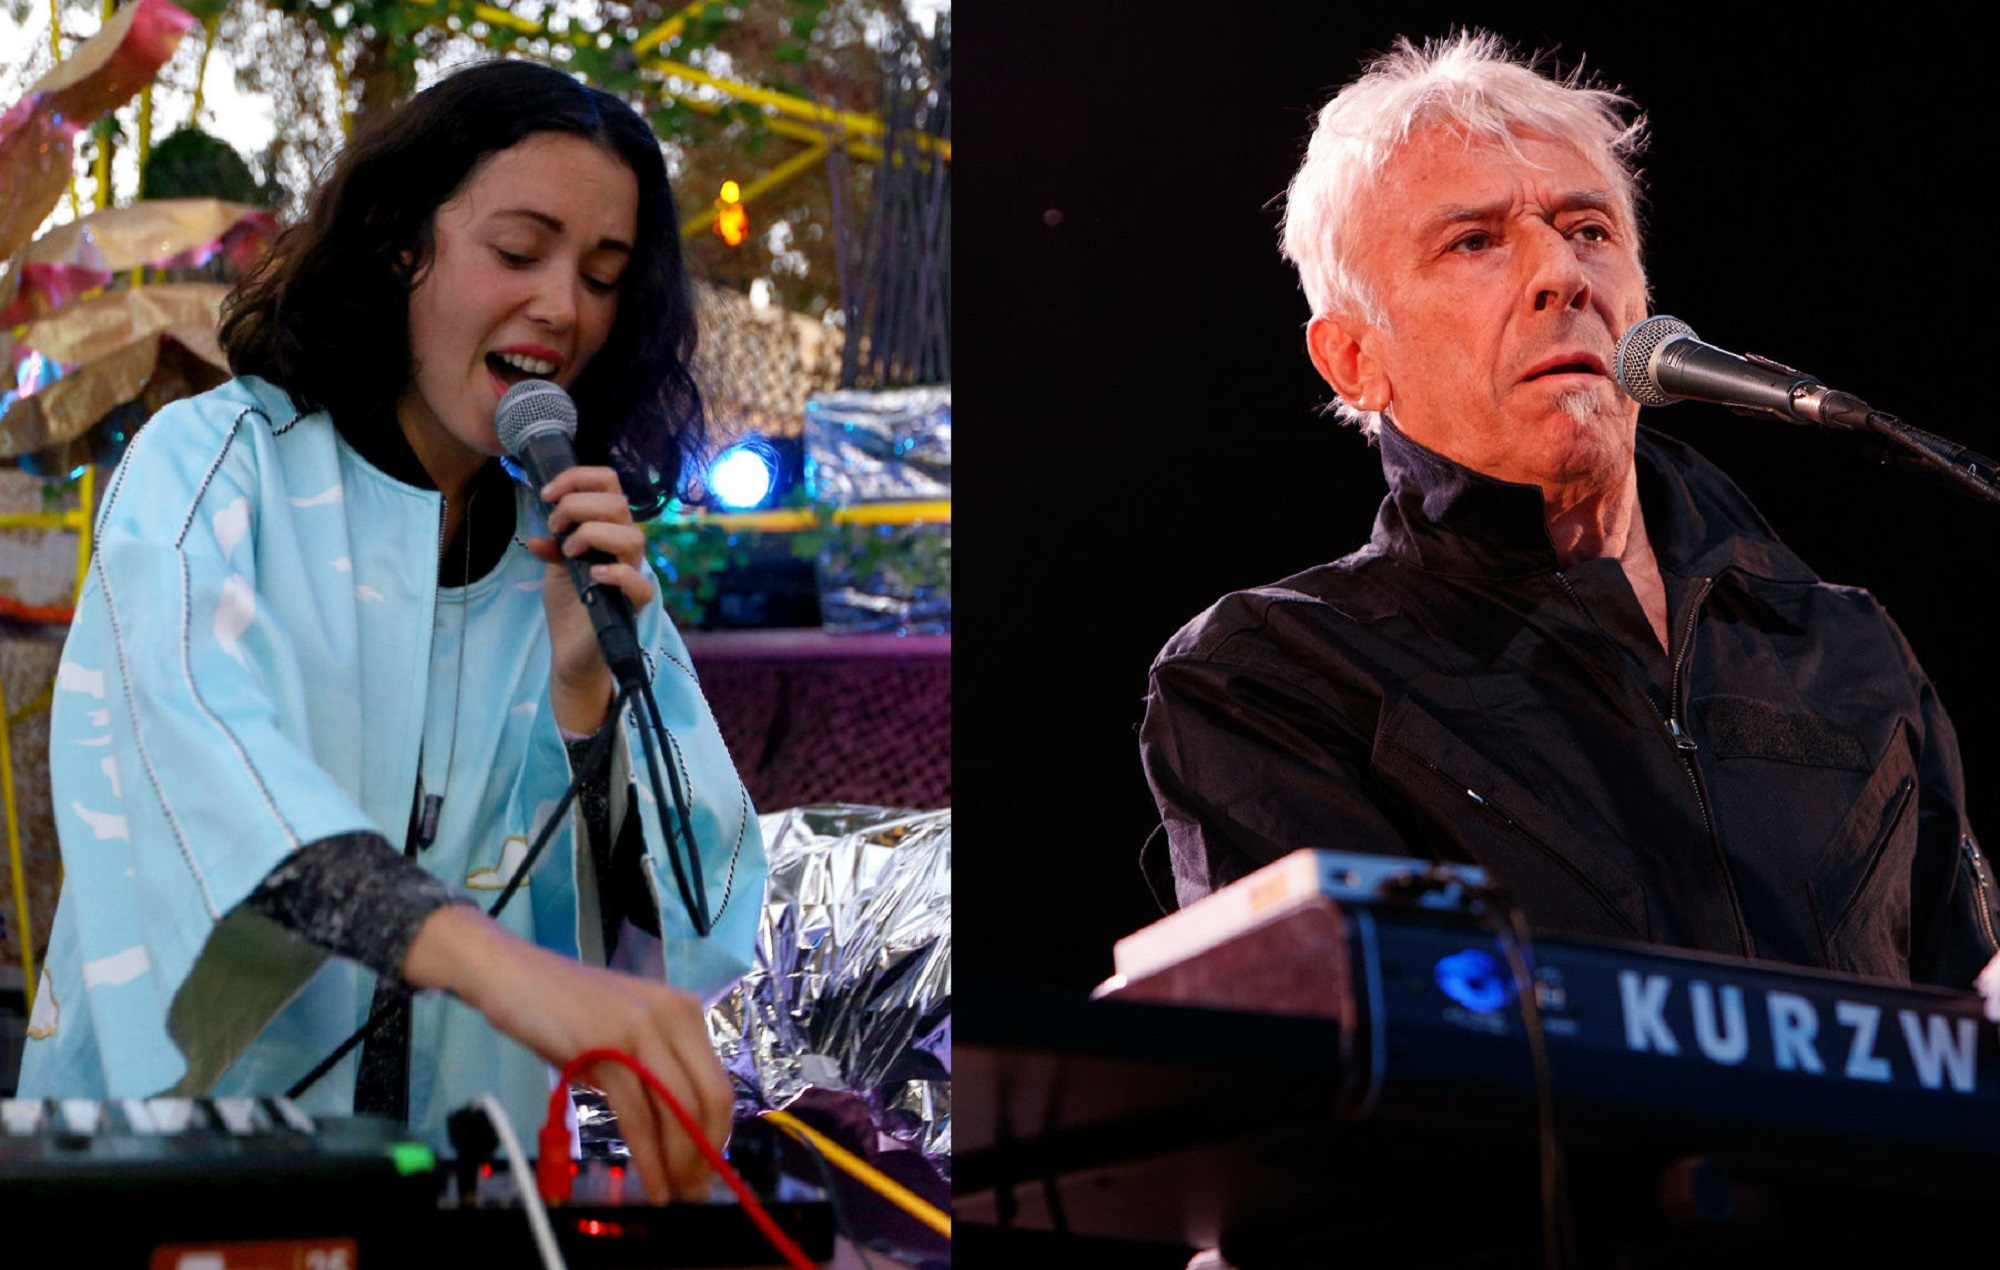 Listen to Kelly Lee Owens and The Velvet Underground's John Cale collaborate on new single 'Corner Of My Sky'